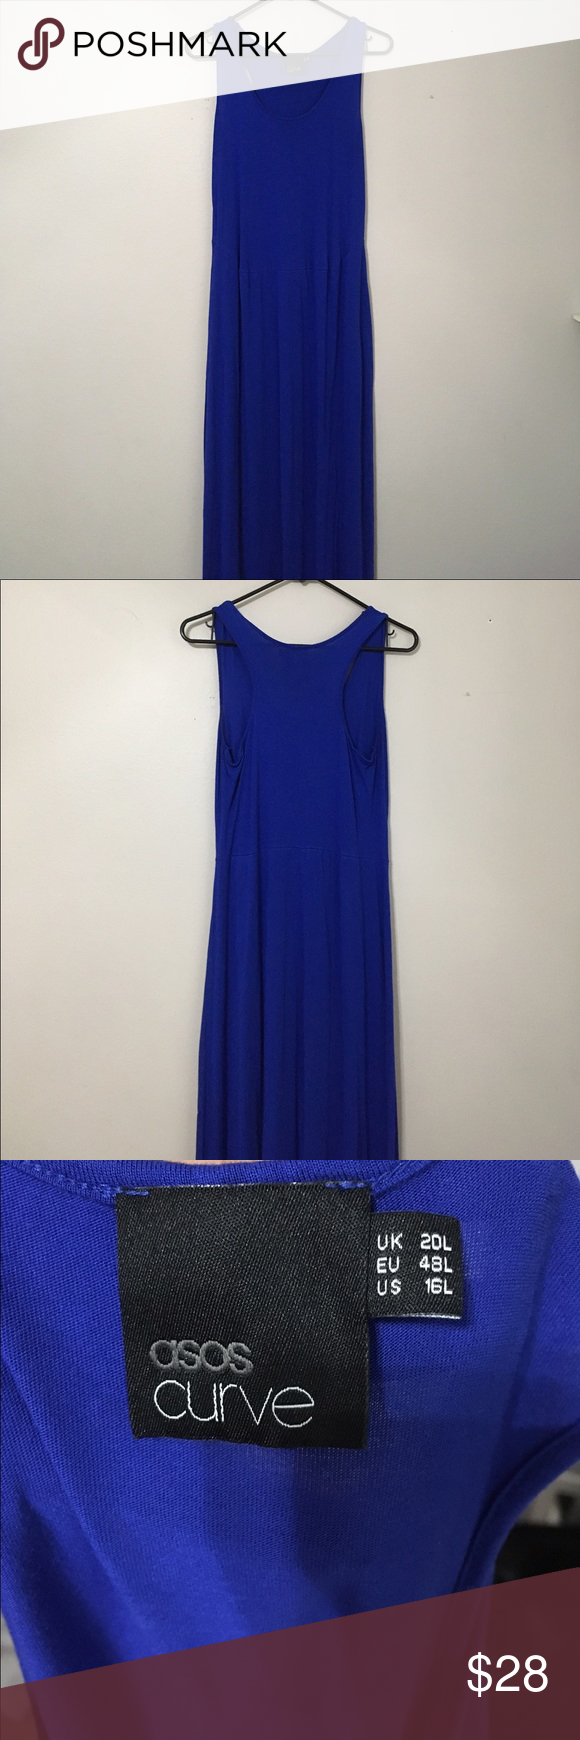 Asos curve blue maxi dress Sz 16L THis is a maxi dress in good used condition. This is a full length dress . Perfect for spring or summer. ASOS Curve Dresses Maxi